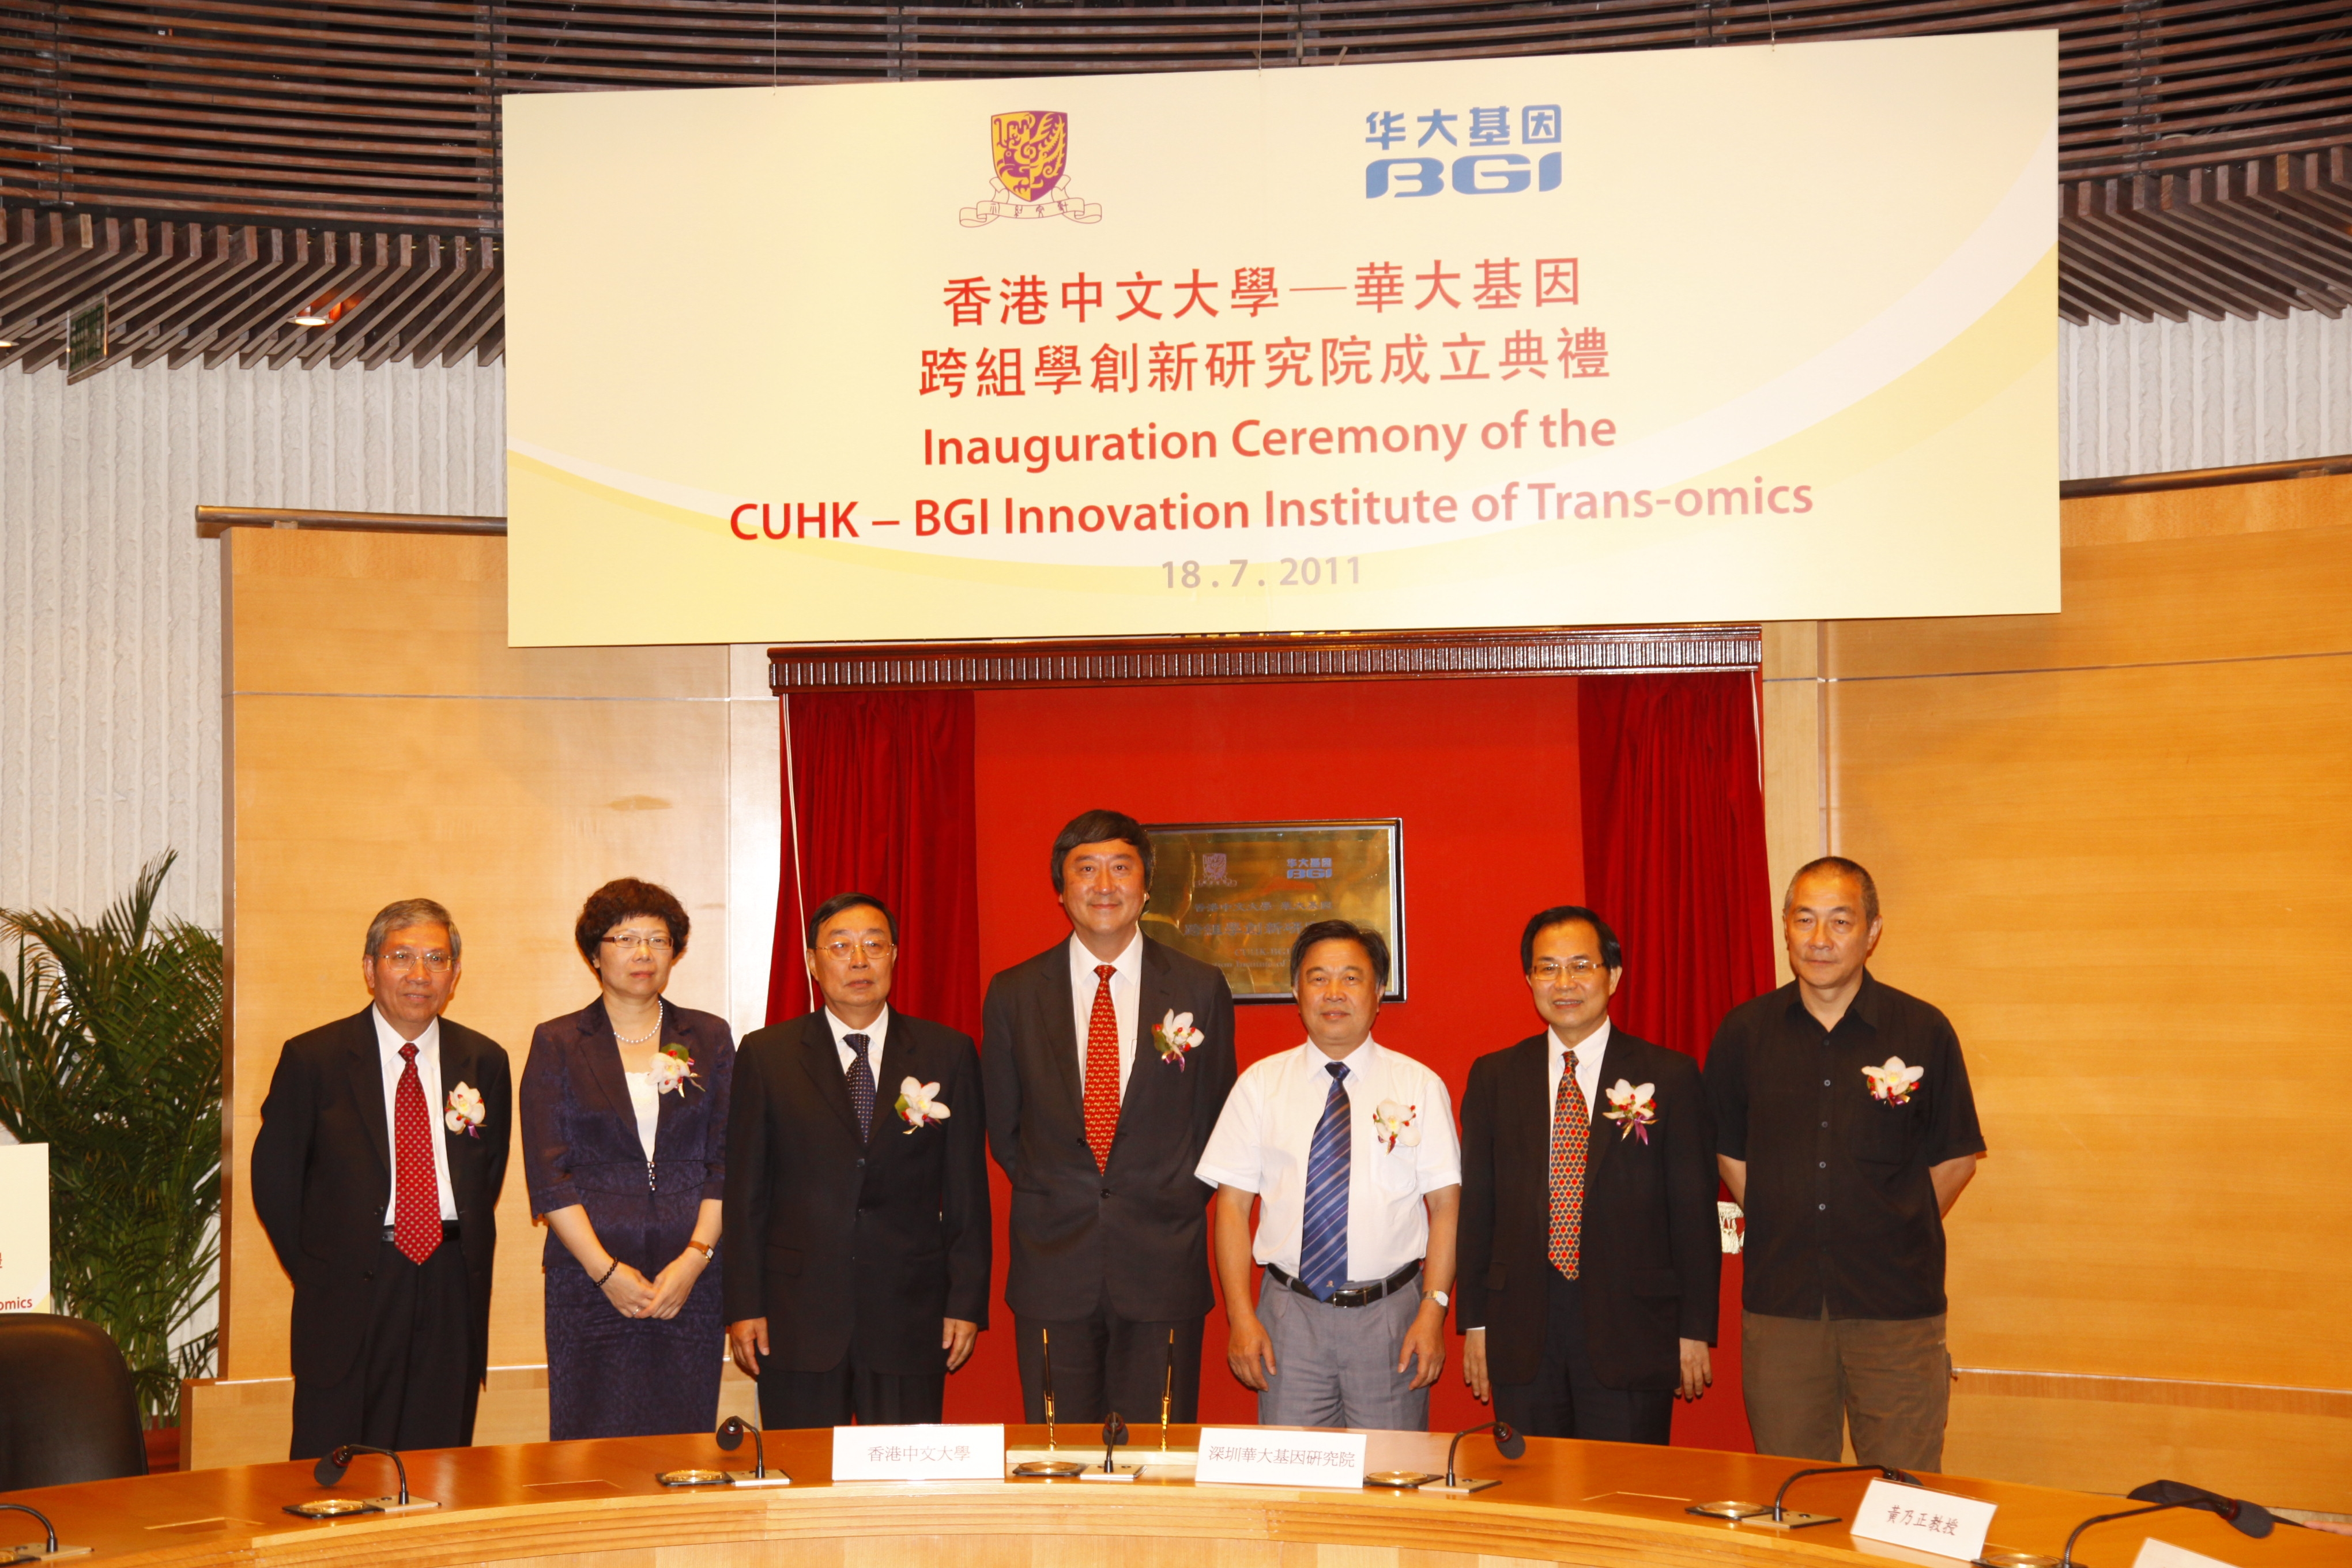 The officiating guests take a group photo after unveiling the commemorative plaque: (from left) Prof. Chan Wai-yee, Director of the CUHK–BGI Innovation Institute of Trans-omics; Ms. Guo Yurong, Secretary of Shenzhen Municipal Education Committee and Director of the Shenzhen Municipal Education Bureau; Prof. Liu Yingli, former member of the Standing Committee and Executive Vice-Mayor of Shenzhen Municipal Government, President of Shenzhen Entrepreneur Association and Honorary Fellow of CUHK; Prof. Joseph J.Y. Sung, Vice-Chancellor, CUHK; Prof. Yang Huanming, Chairman and Professor, BGI – Shenzhen, China; Mr. Mo Jin-qiang, Deputy Director General of Education, Science and Technology Department of Liaison Office of the Central People's Government in the HKSAR; Prof. Wang Jian, President of BGI – Shenzhen, China.